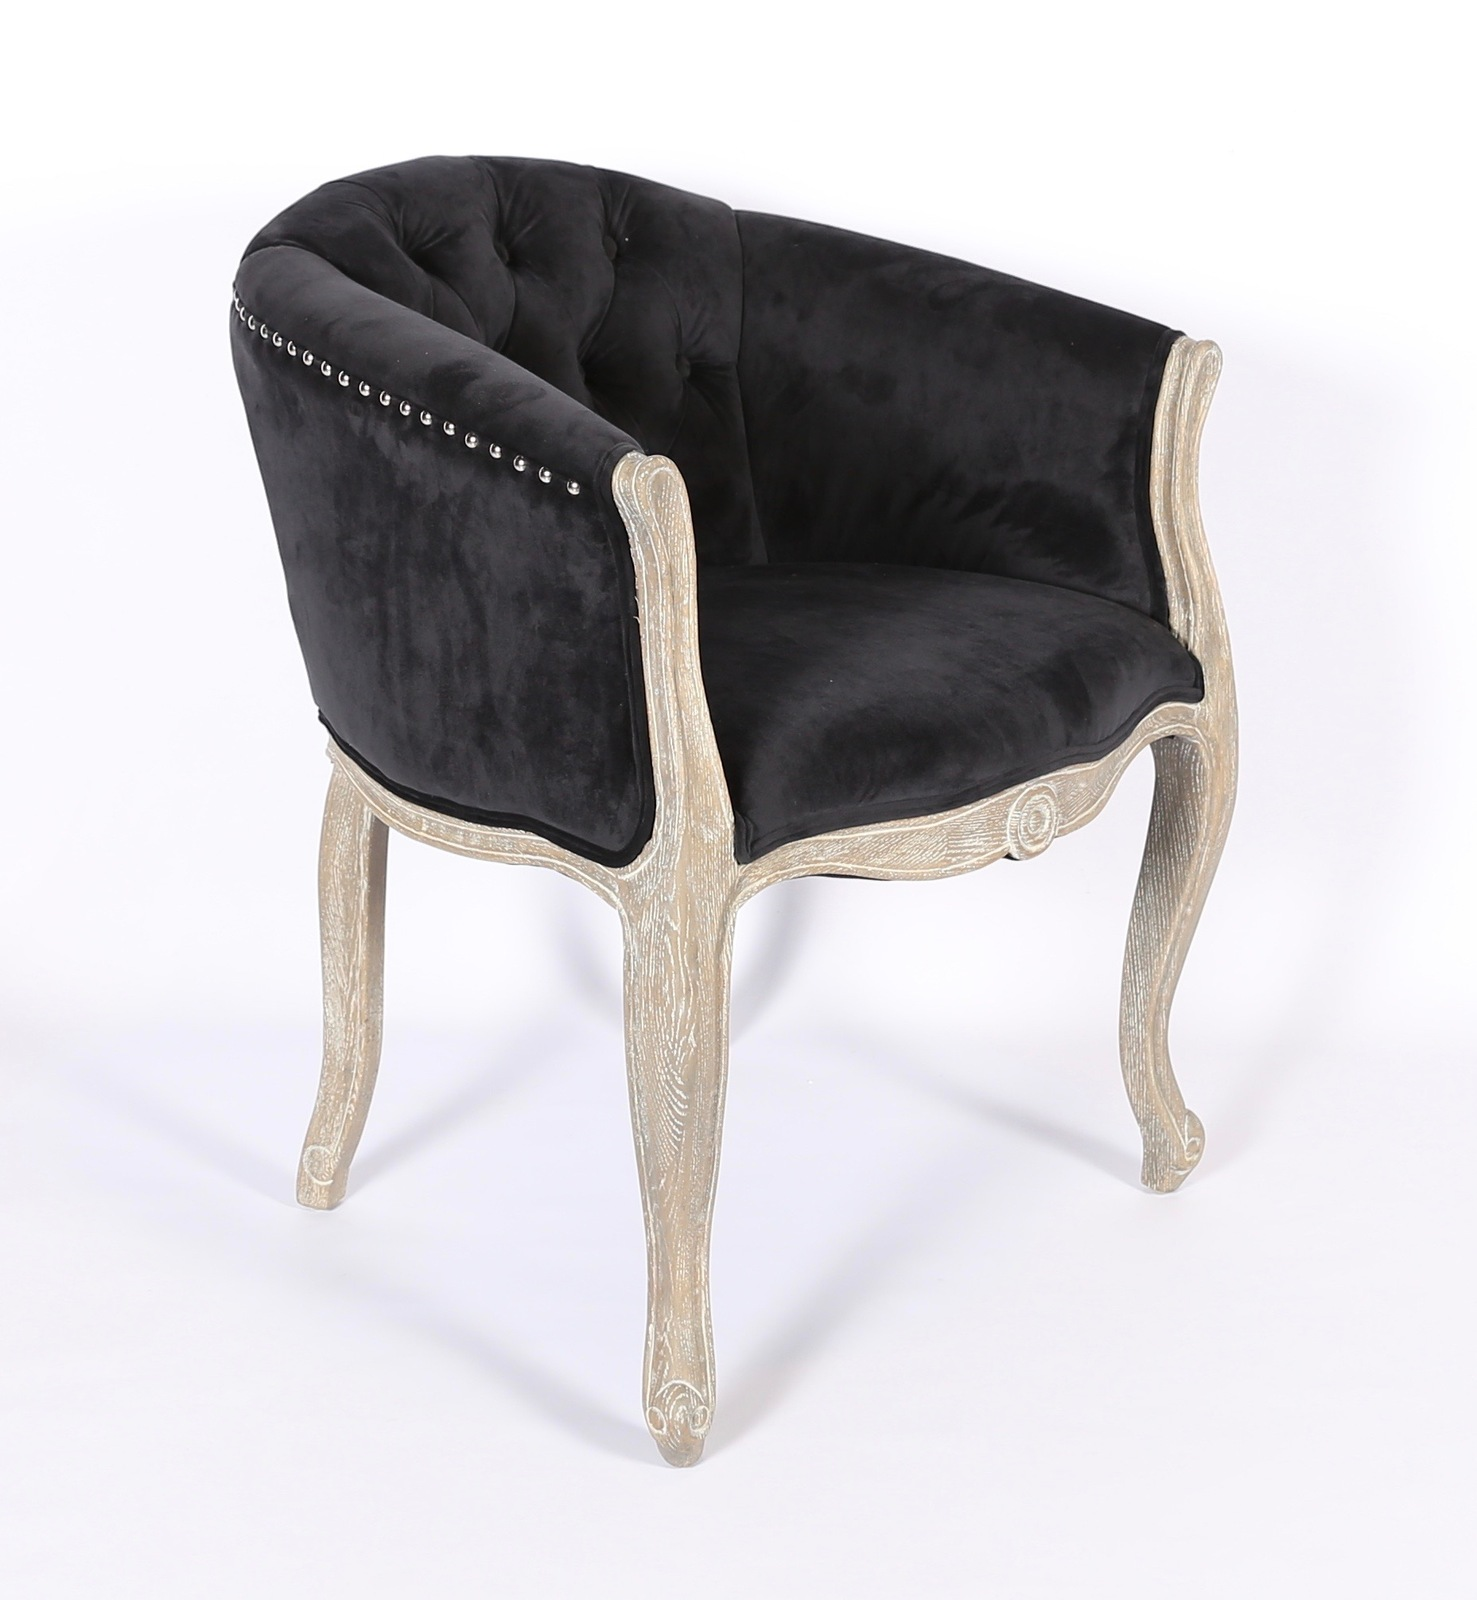 traditional occasional chairs wedding for sale chair lounge furniture brisbane